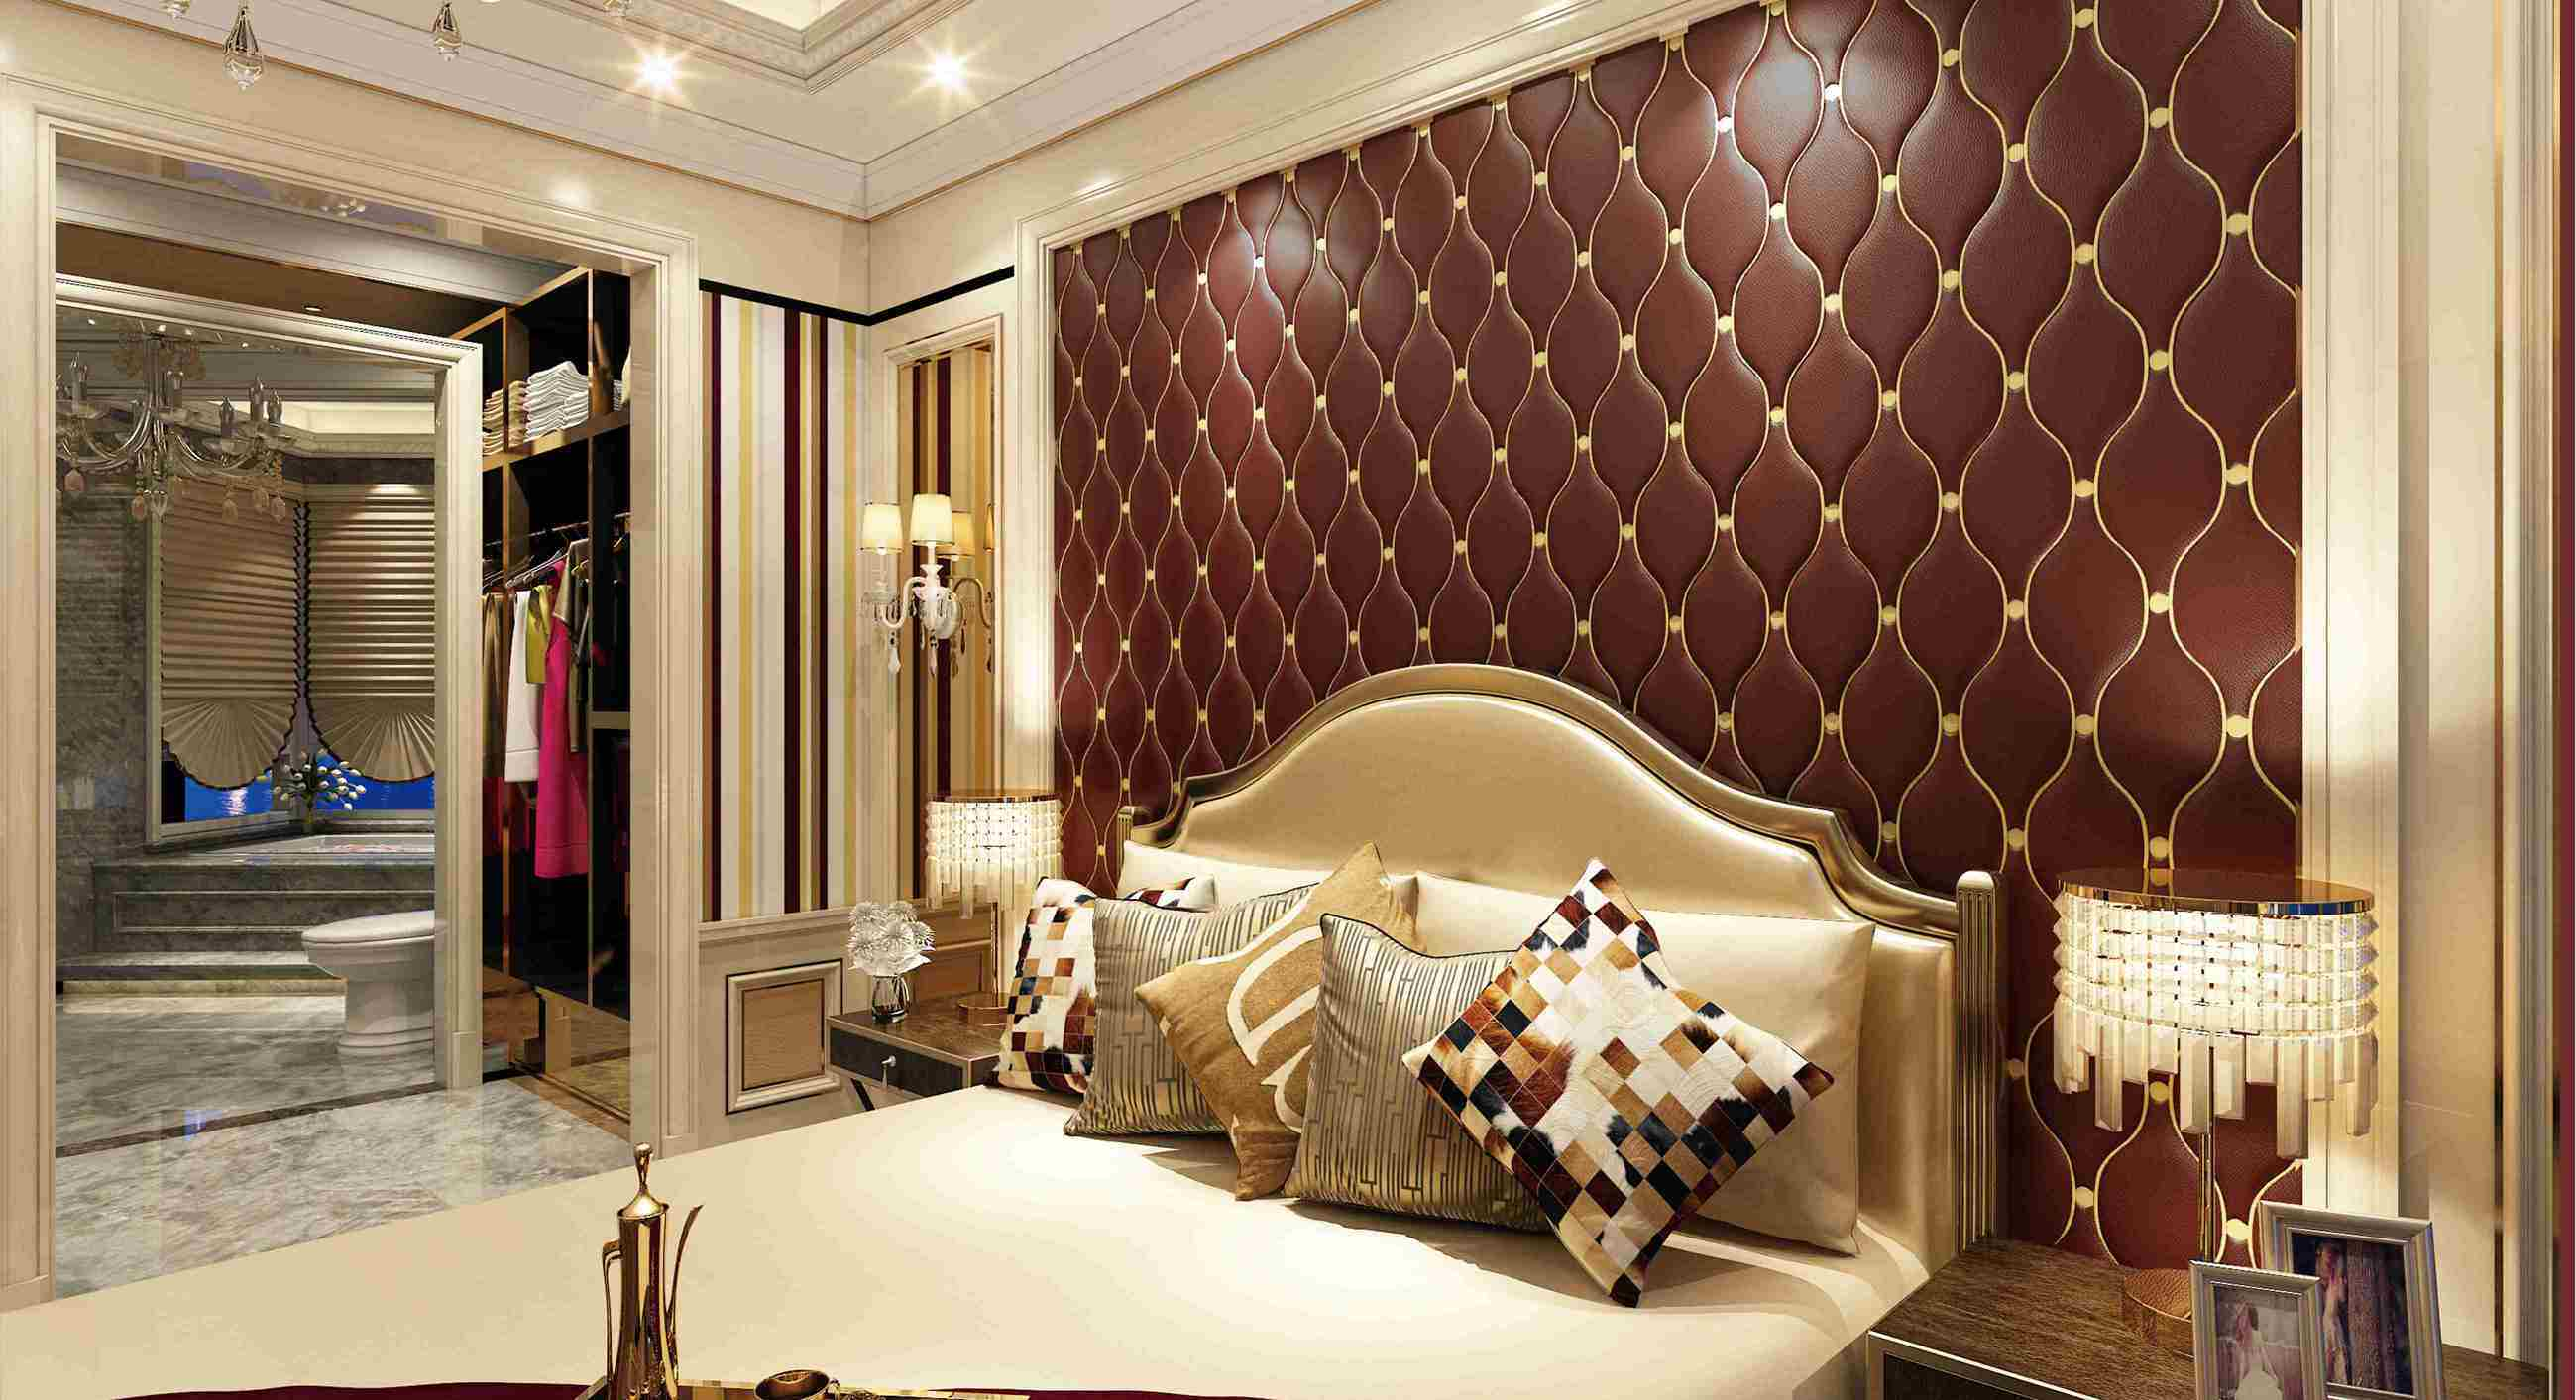 Customized Leather 3D Panel SL-014 for Indoor Wall Decoration